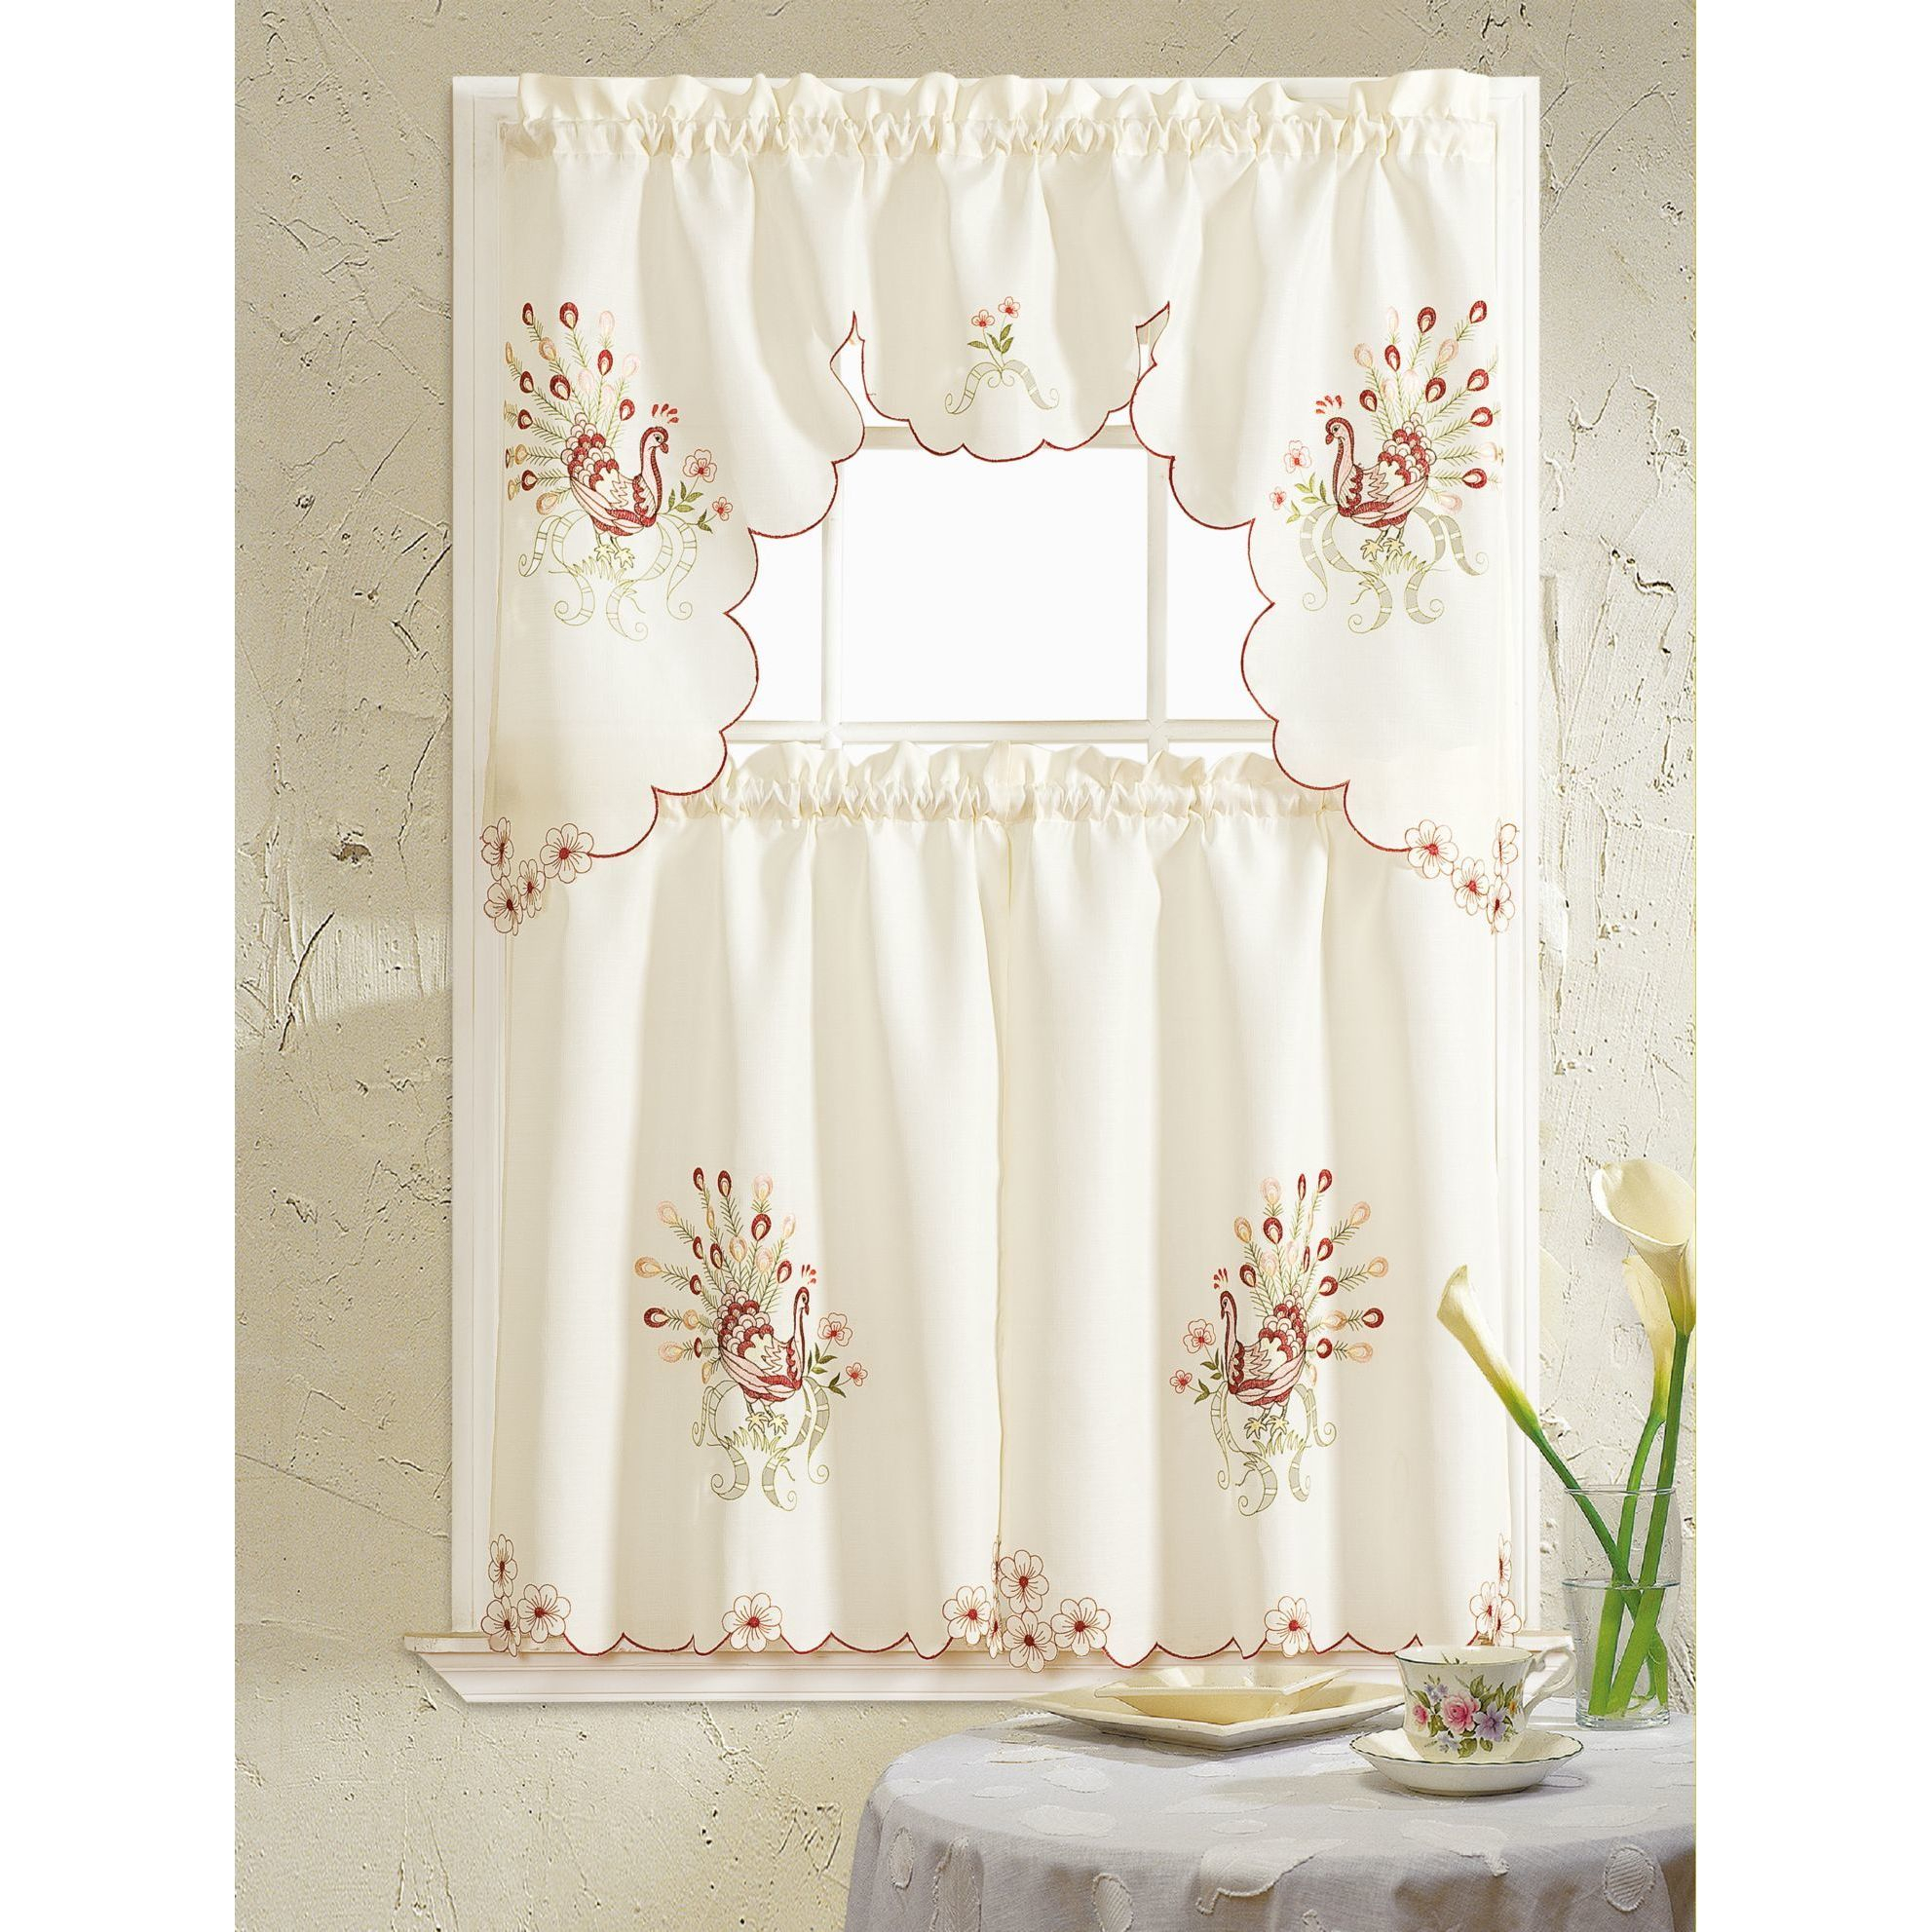 Rt Designers Collection Peacock Embroidered Tiers And Valance Kitchen  Curtain Set For Spring Daisy Tiered Curtain 3 Piece Sets (Gallery 9 of 20)